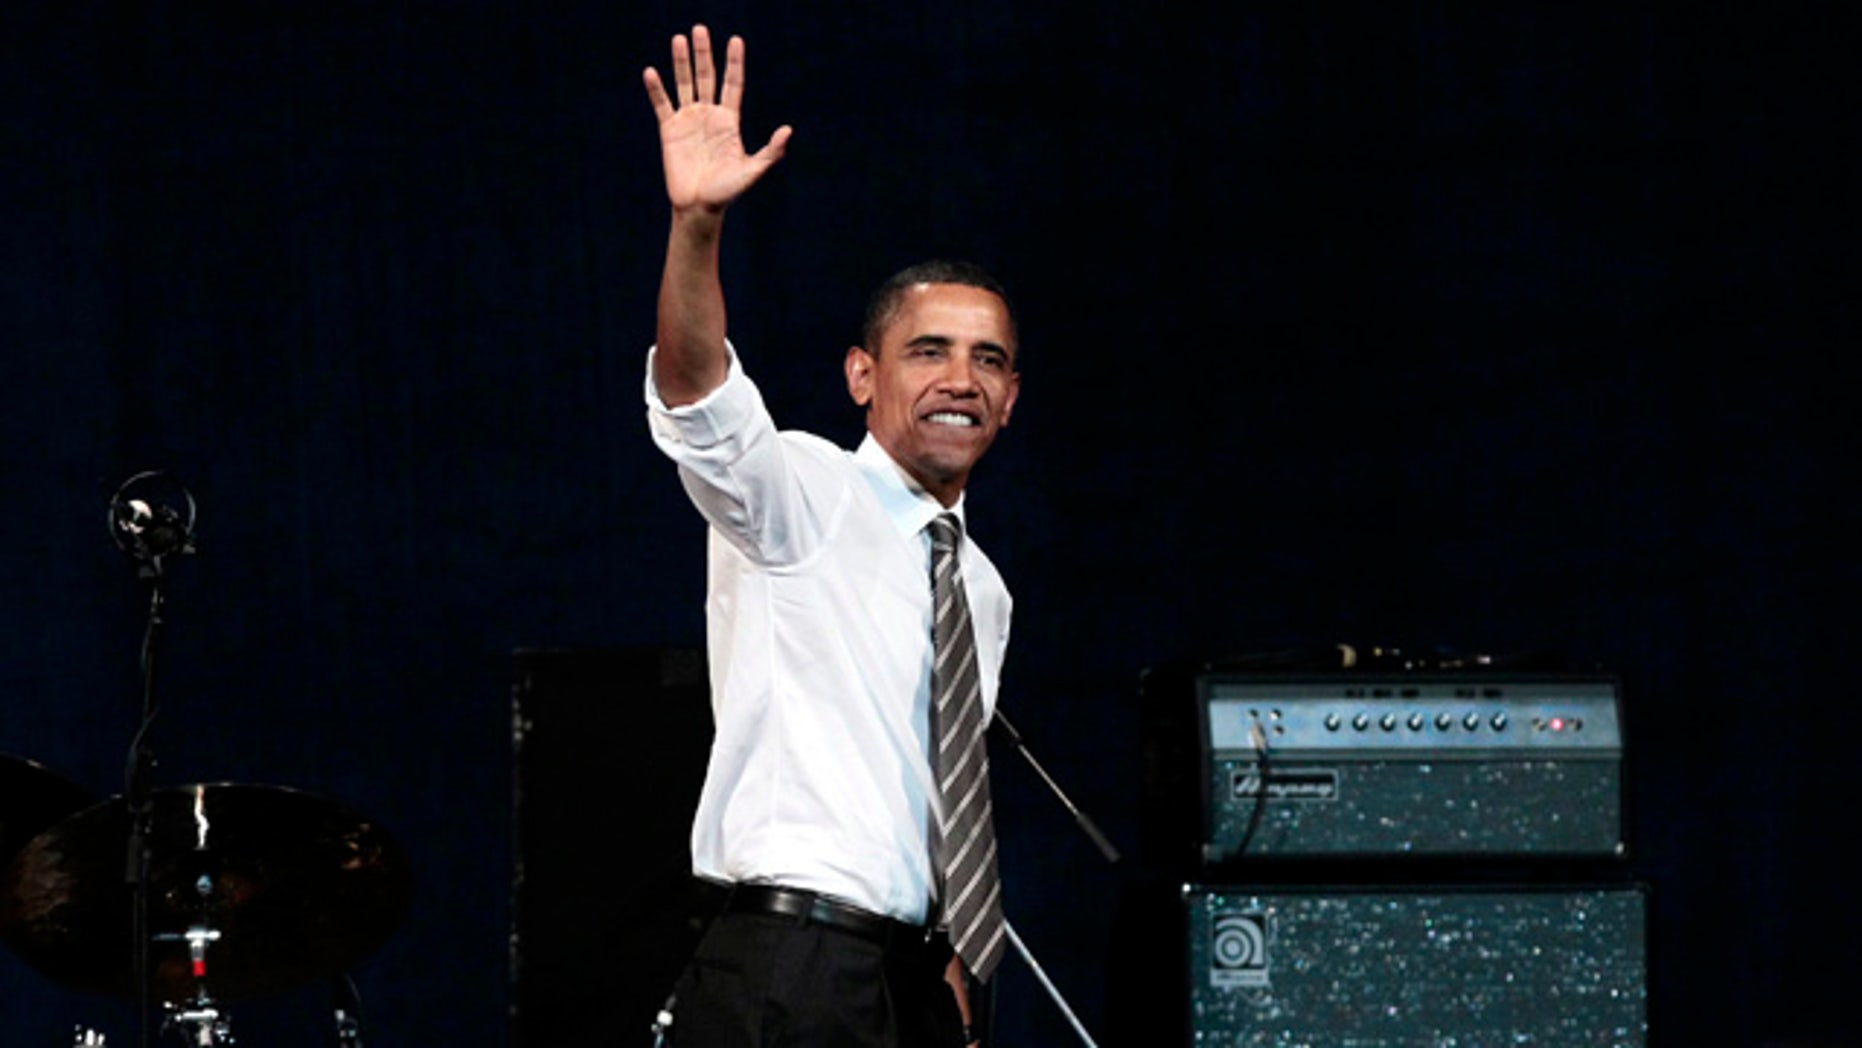 Sept. 25: President Barack Obama walks off stage after speaking at a Democratic fundraiser at the Paramount Theater in Seattle.